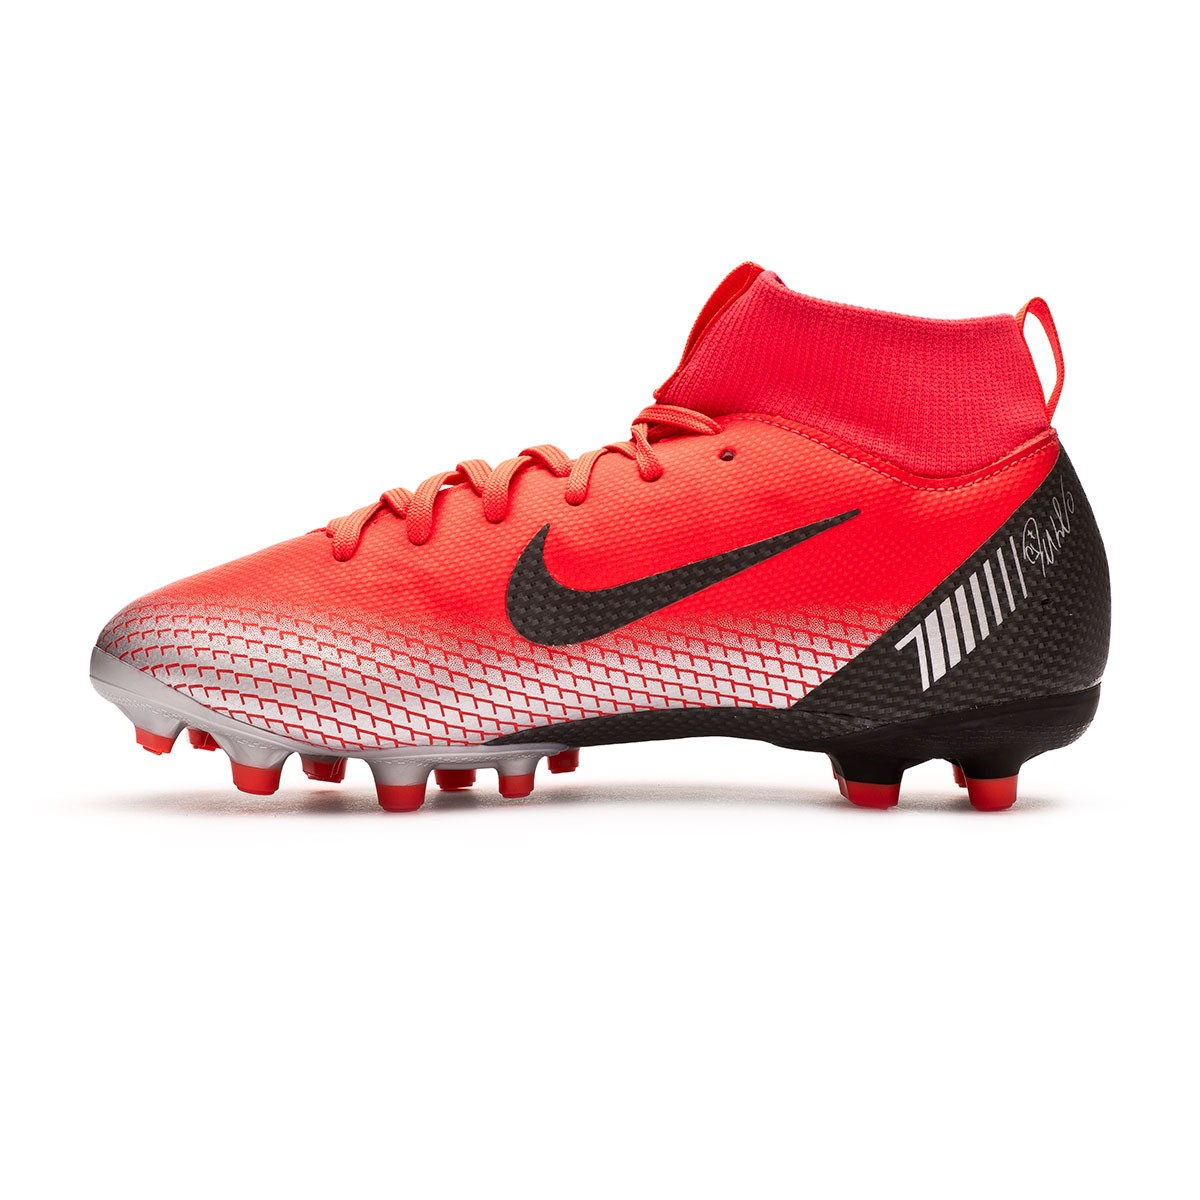 magasin d'usine d6174 21f33 Bota Mercurial Superfly VI Academy CR7 MG Niño Bright  crimson-Black-Chrome-Dark grey